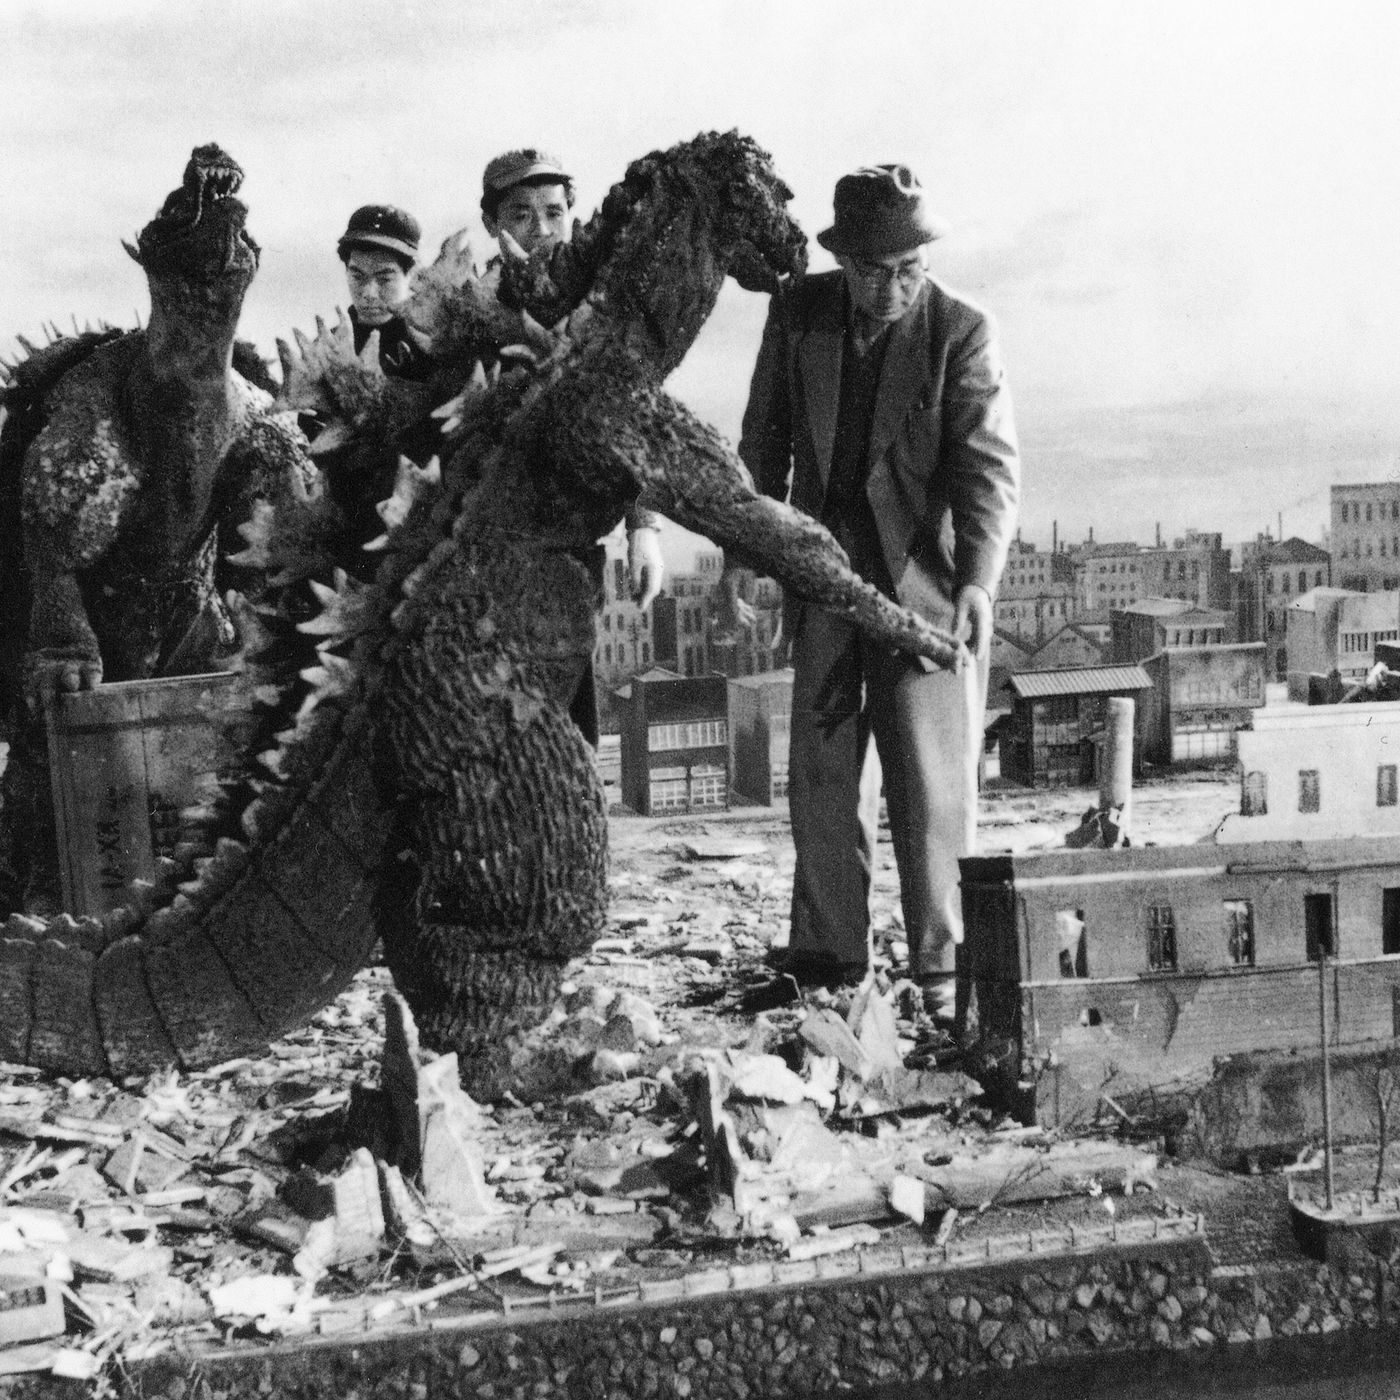 Godzilla Wouldn T Exist Without Eiji Tsuburaya Director Cinematographer And Special Effects Master Vox Godzilla, japanese horror film, released in 1954, that was directed and cowritten by honda ishirō and features innovative special effects by tsuburaya eiji. eiji tsuburaya